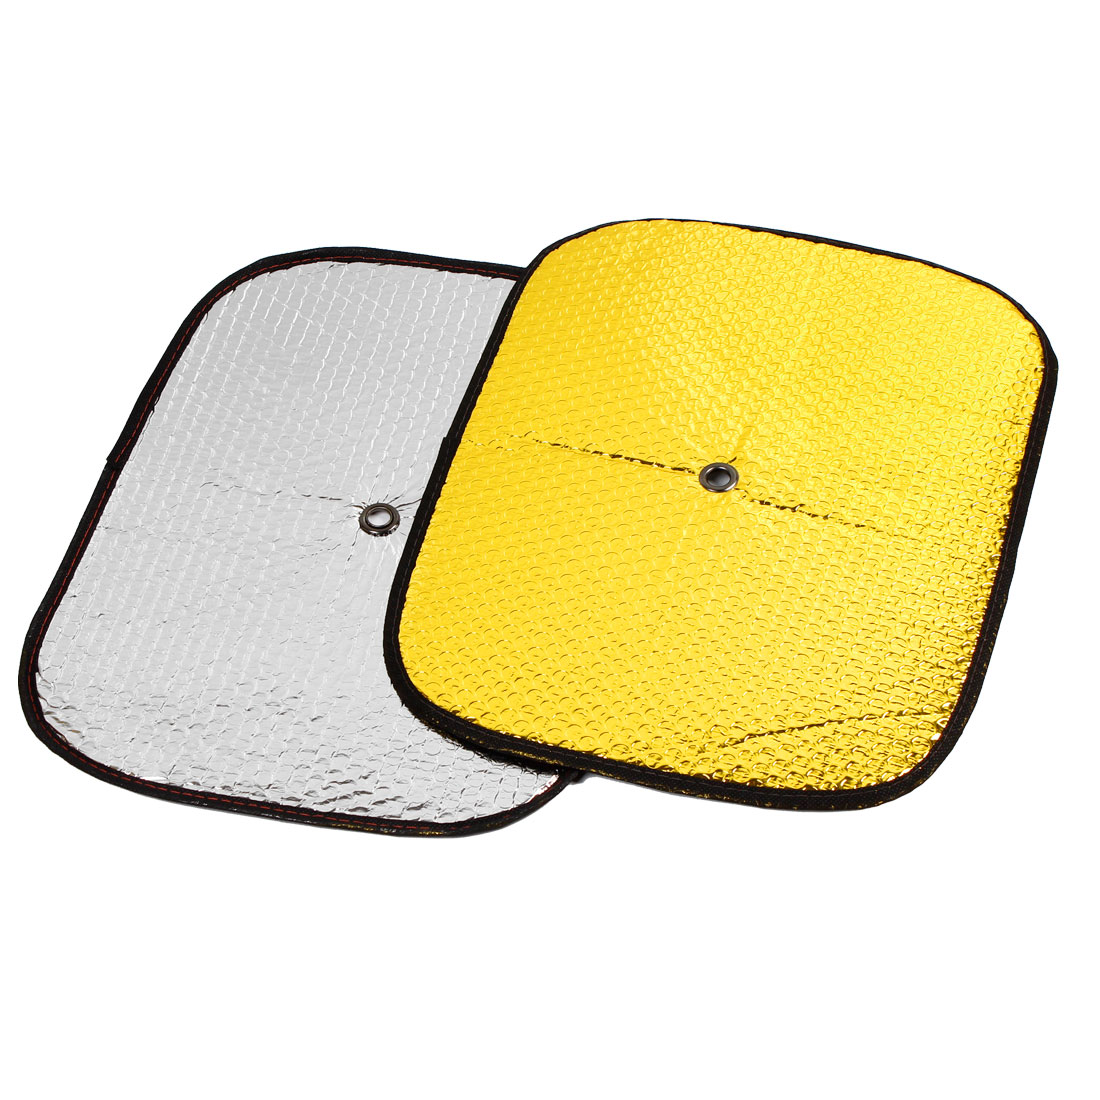 44cm x 35cm Gold Tone Front Rear Window Sun Shield Sunshade 2PCS for Auto